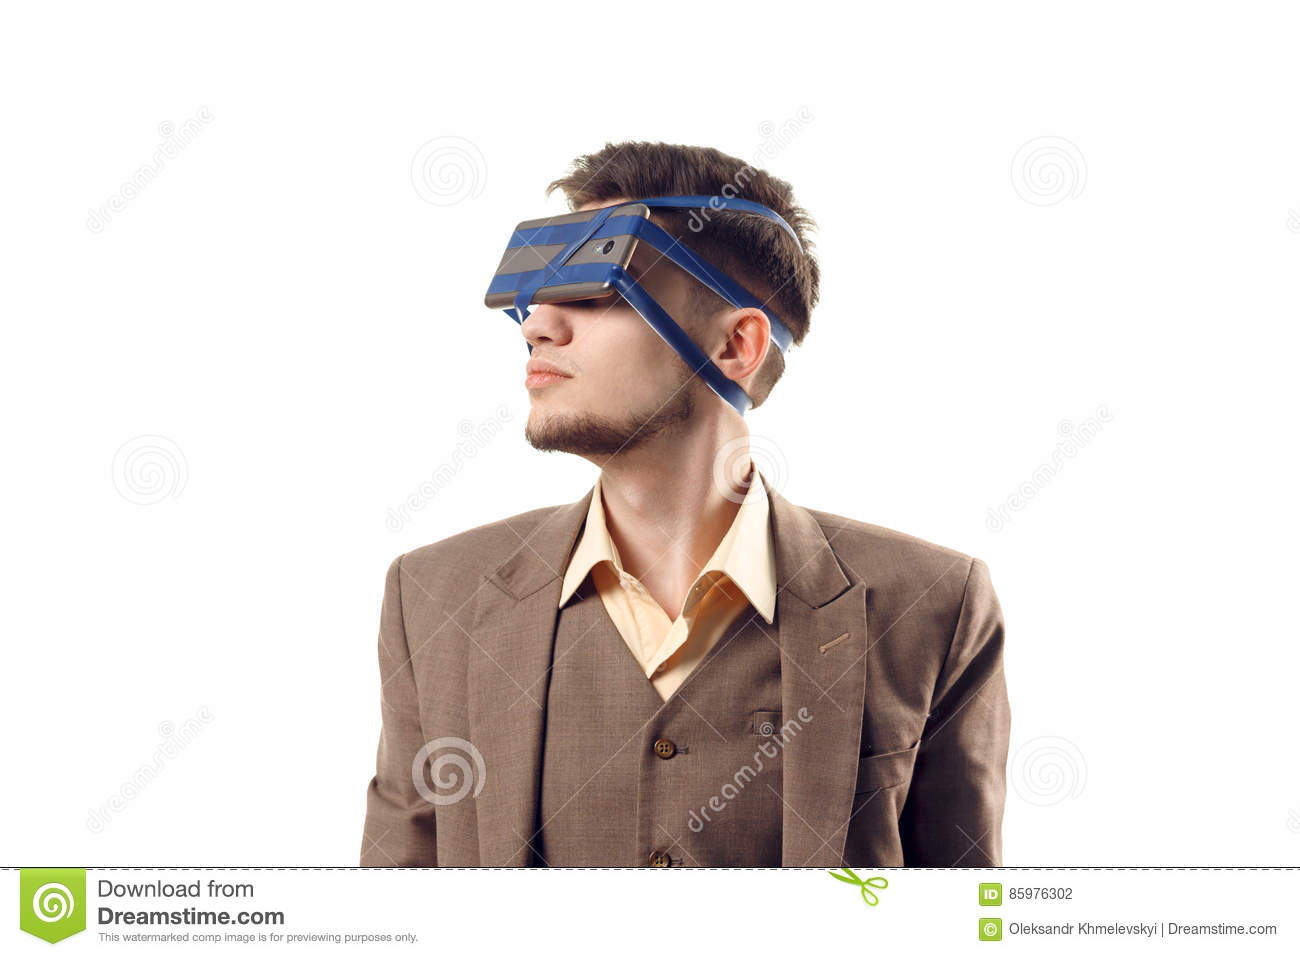 humorous-photo-modern-technologies-young-guy-phone-attached-to-head-using-tape-virtual-reality...jpg